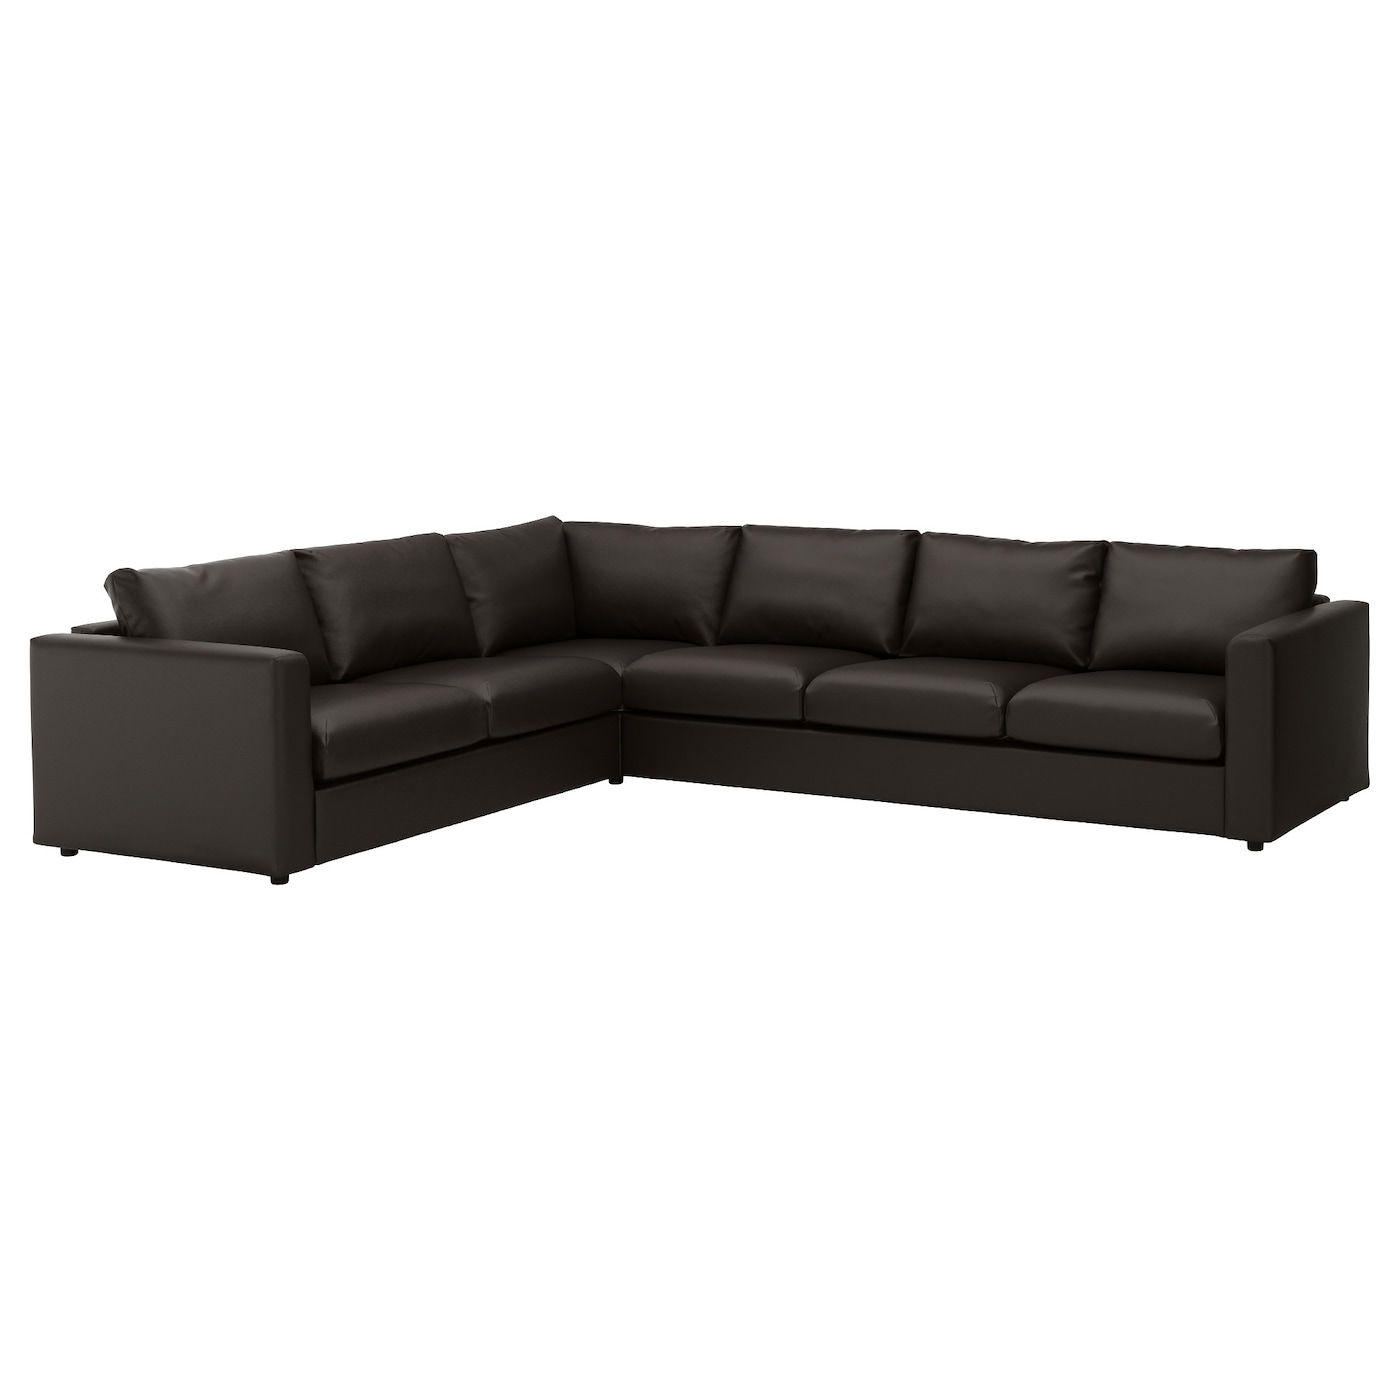 IKEA VIMLE corner sofa, 5-seat 10 year guarantee. Read about the terms in the guarantee brochure.